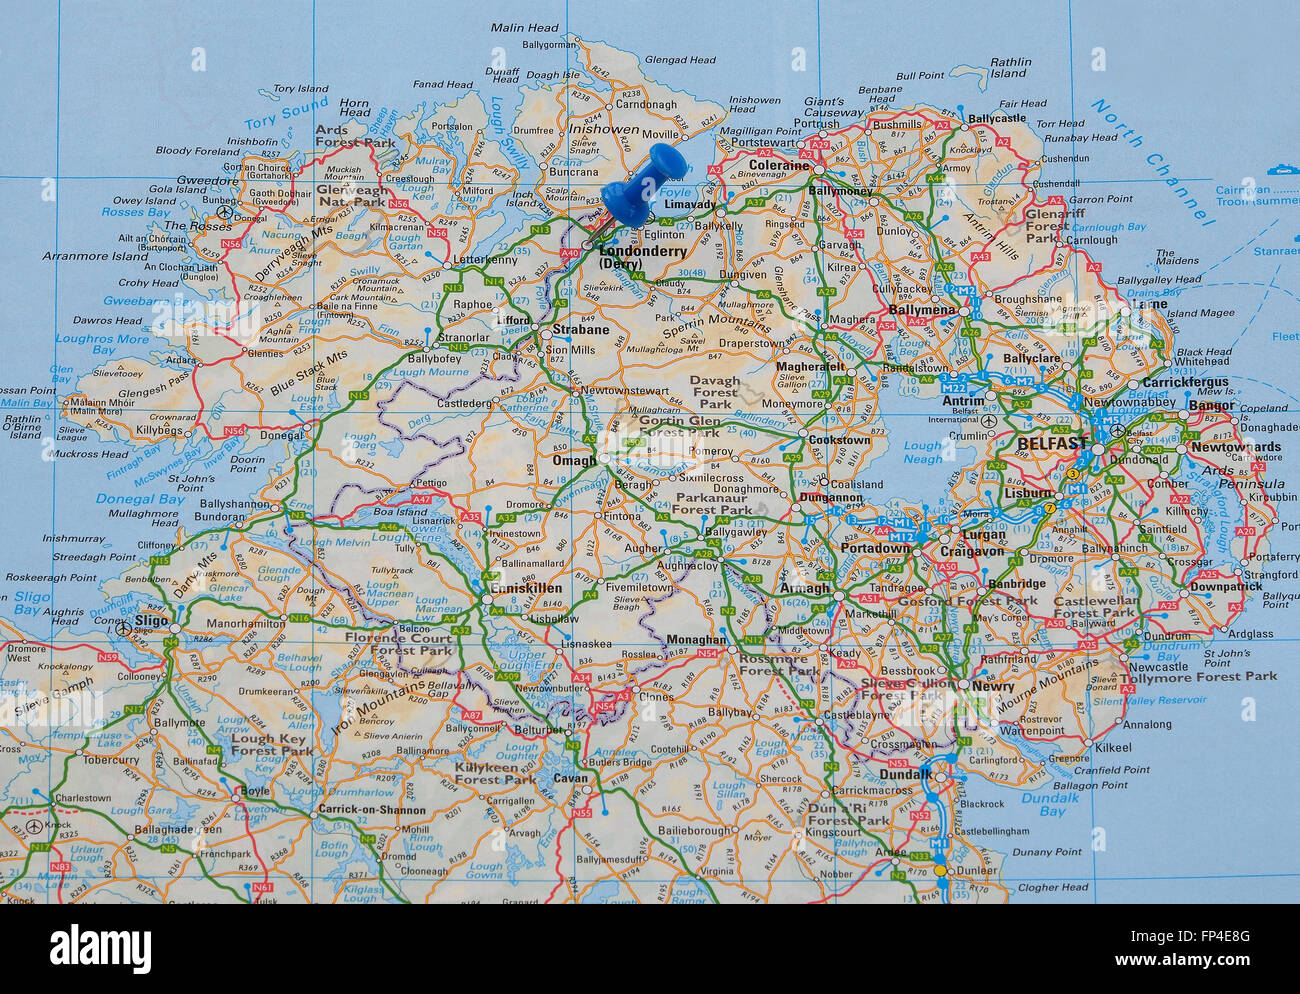 Road map of Northern Ireland with a map pin indicating Londonderry